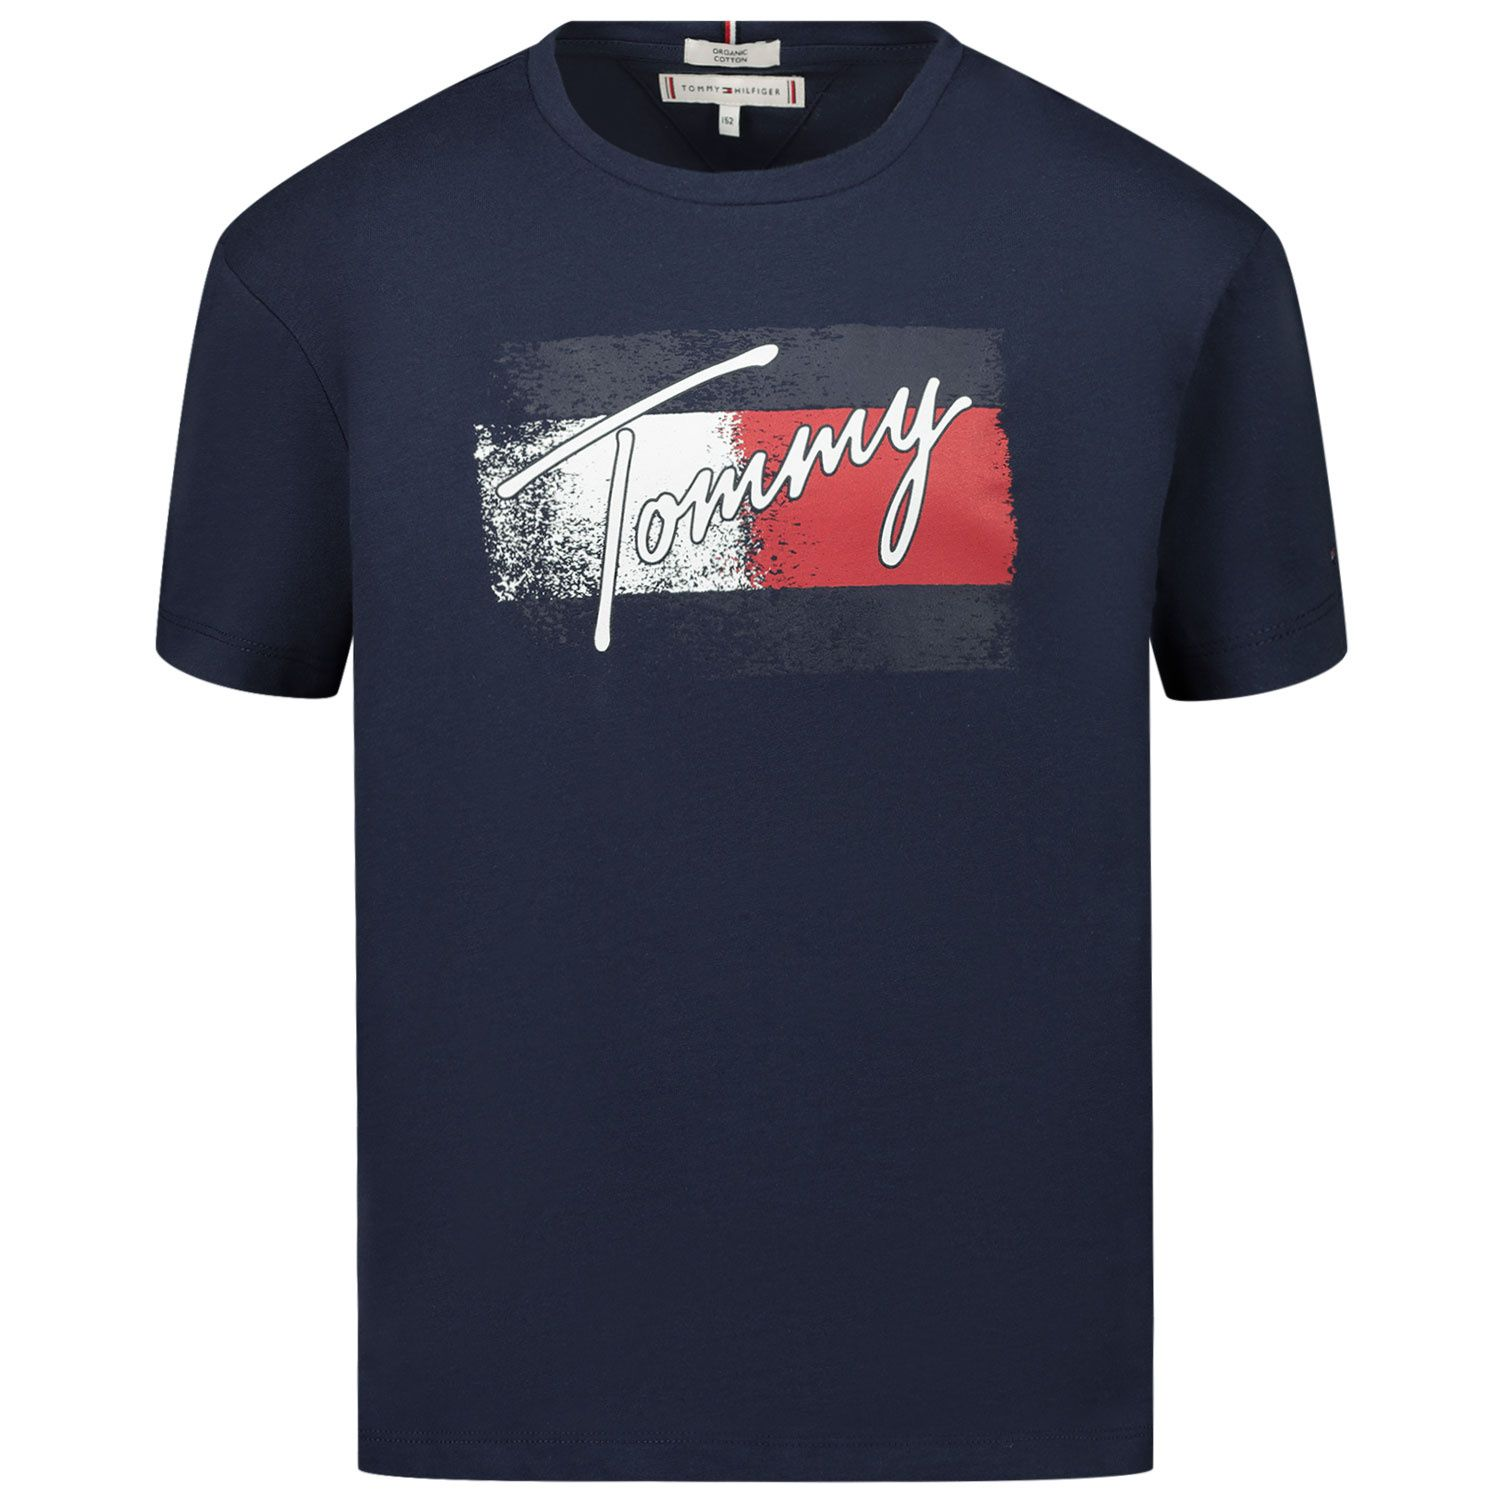 Picture of Tommy Hilfiger KG0KG05909 kids t-shirt navy